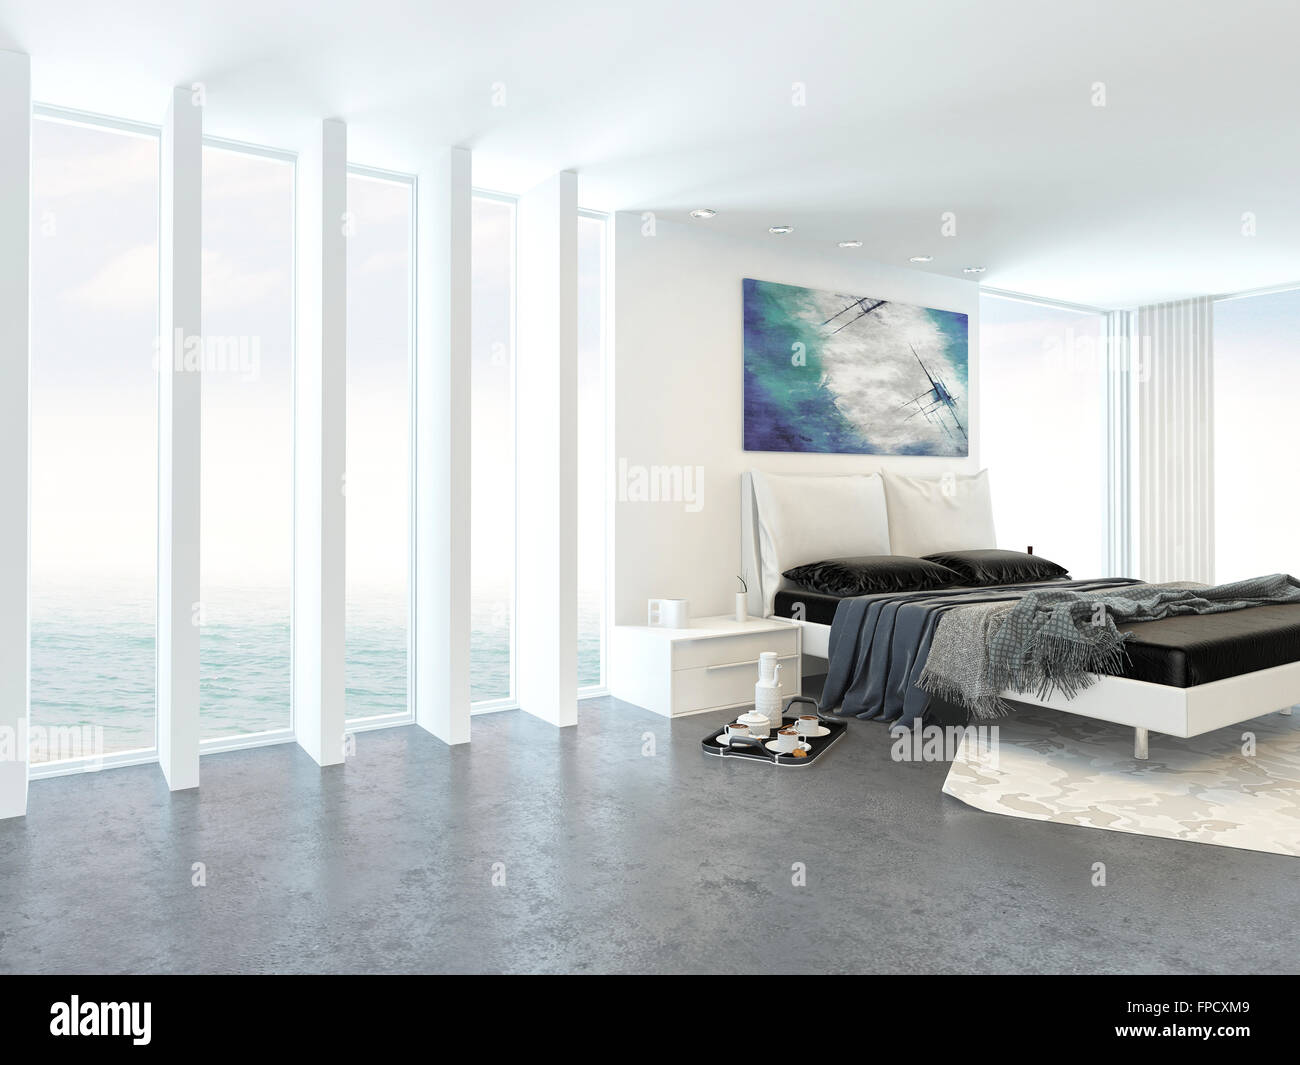 Modern Bright Light Bedroom Interior With A Double Divan Bed Alongside Floor To Ceiling Glass